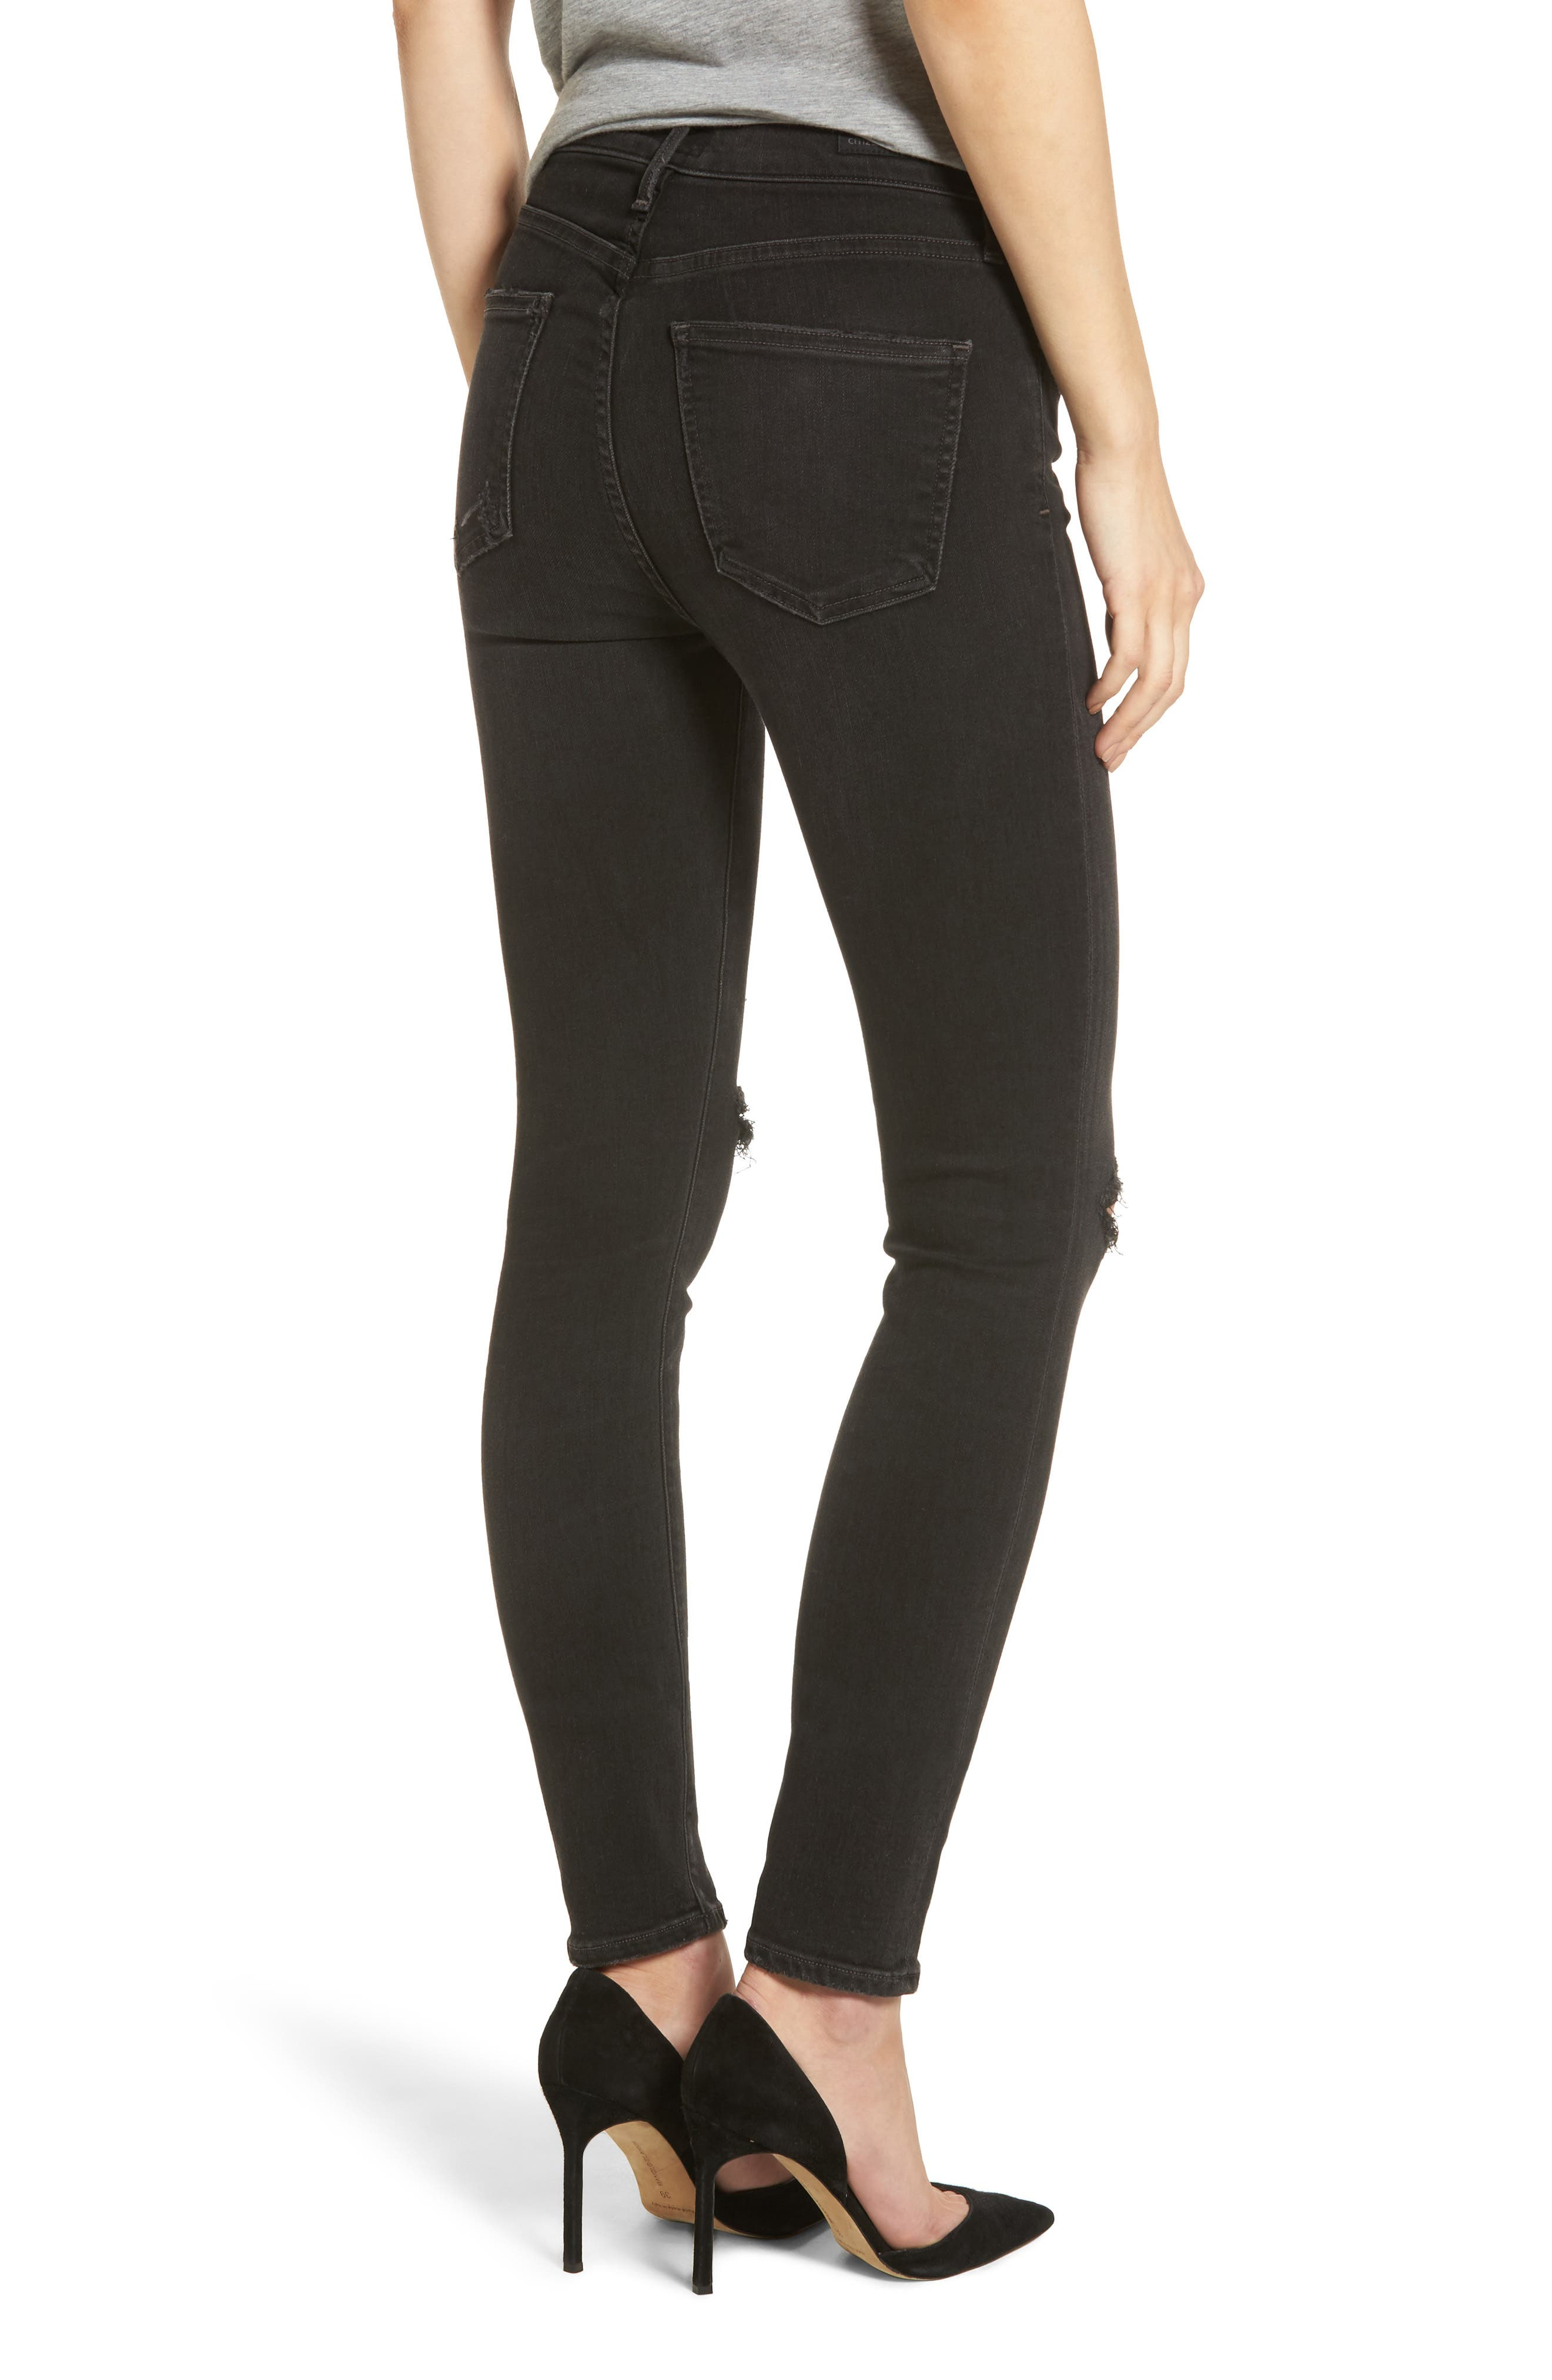 Rocket High Waist Skinny Jeans,                             Alternate thumbnail 2, color,                             Distressed Darkness